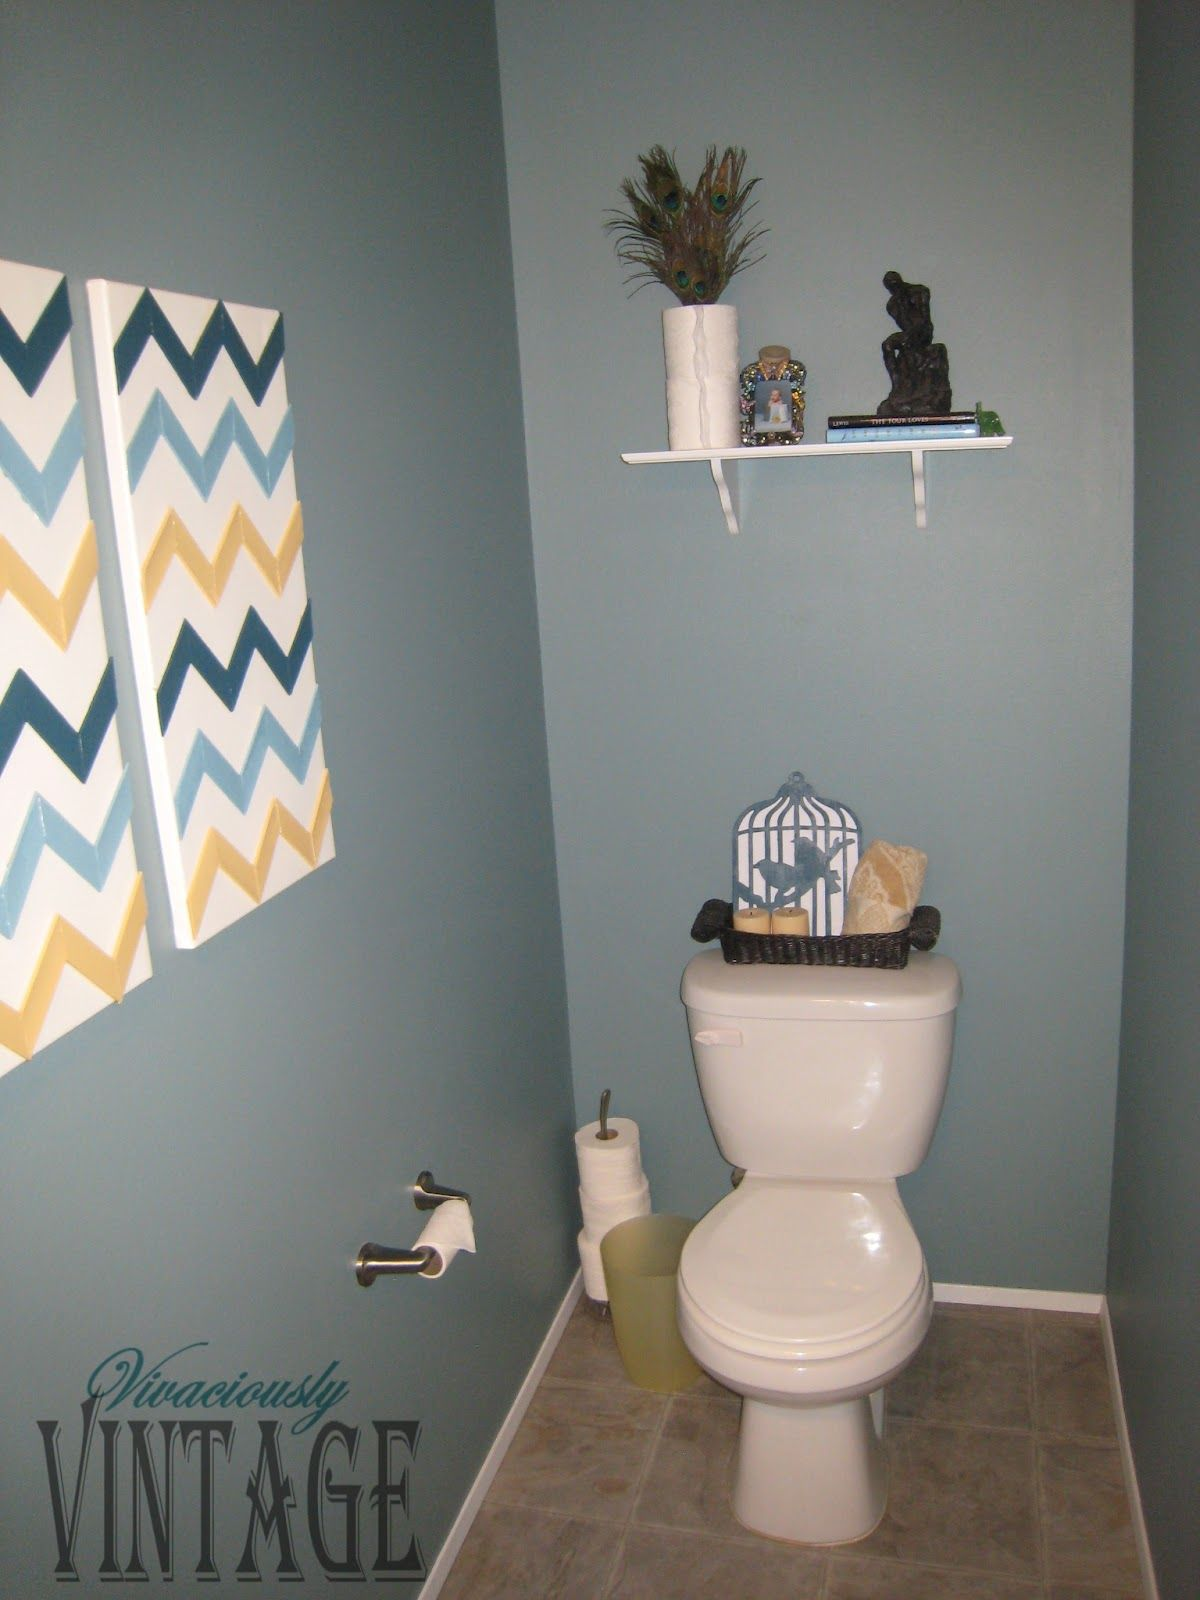 downstairs toilet decorating ideas vivaciously vintage half